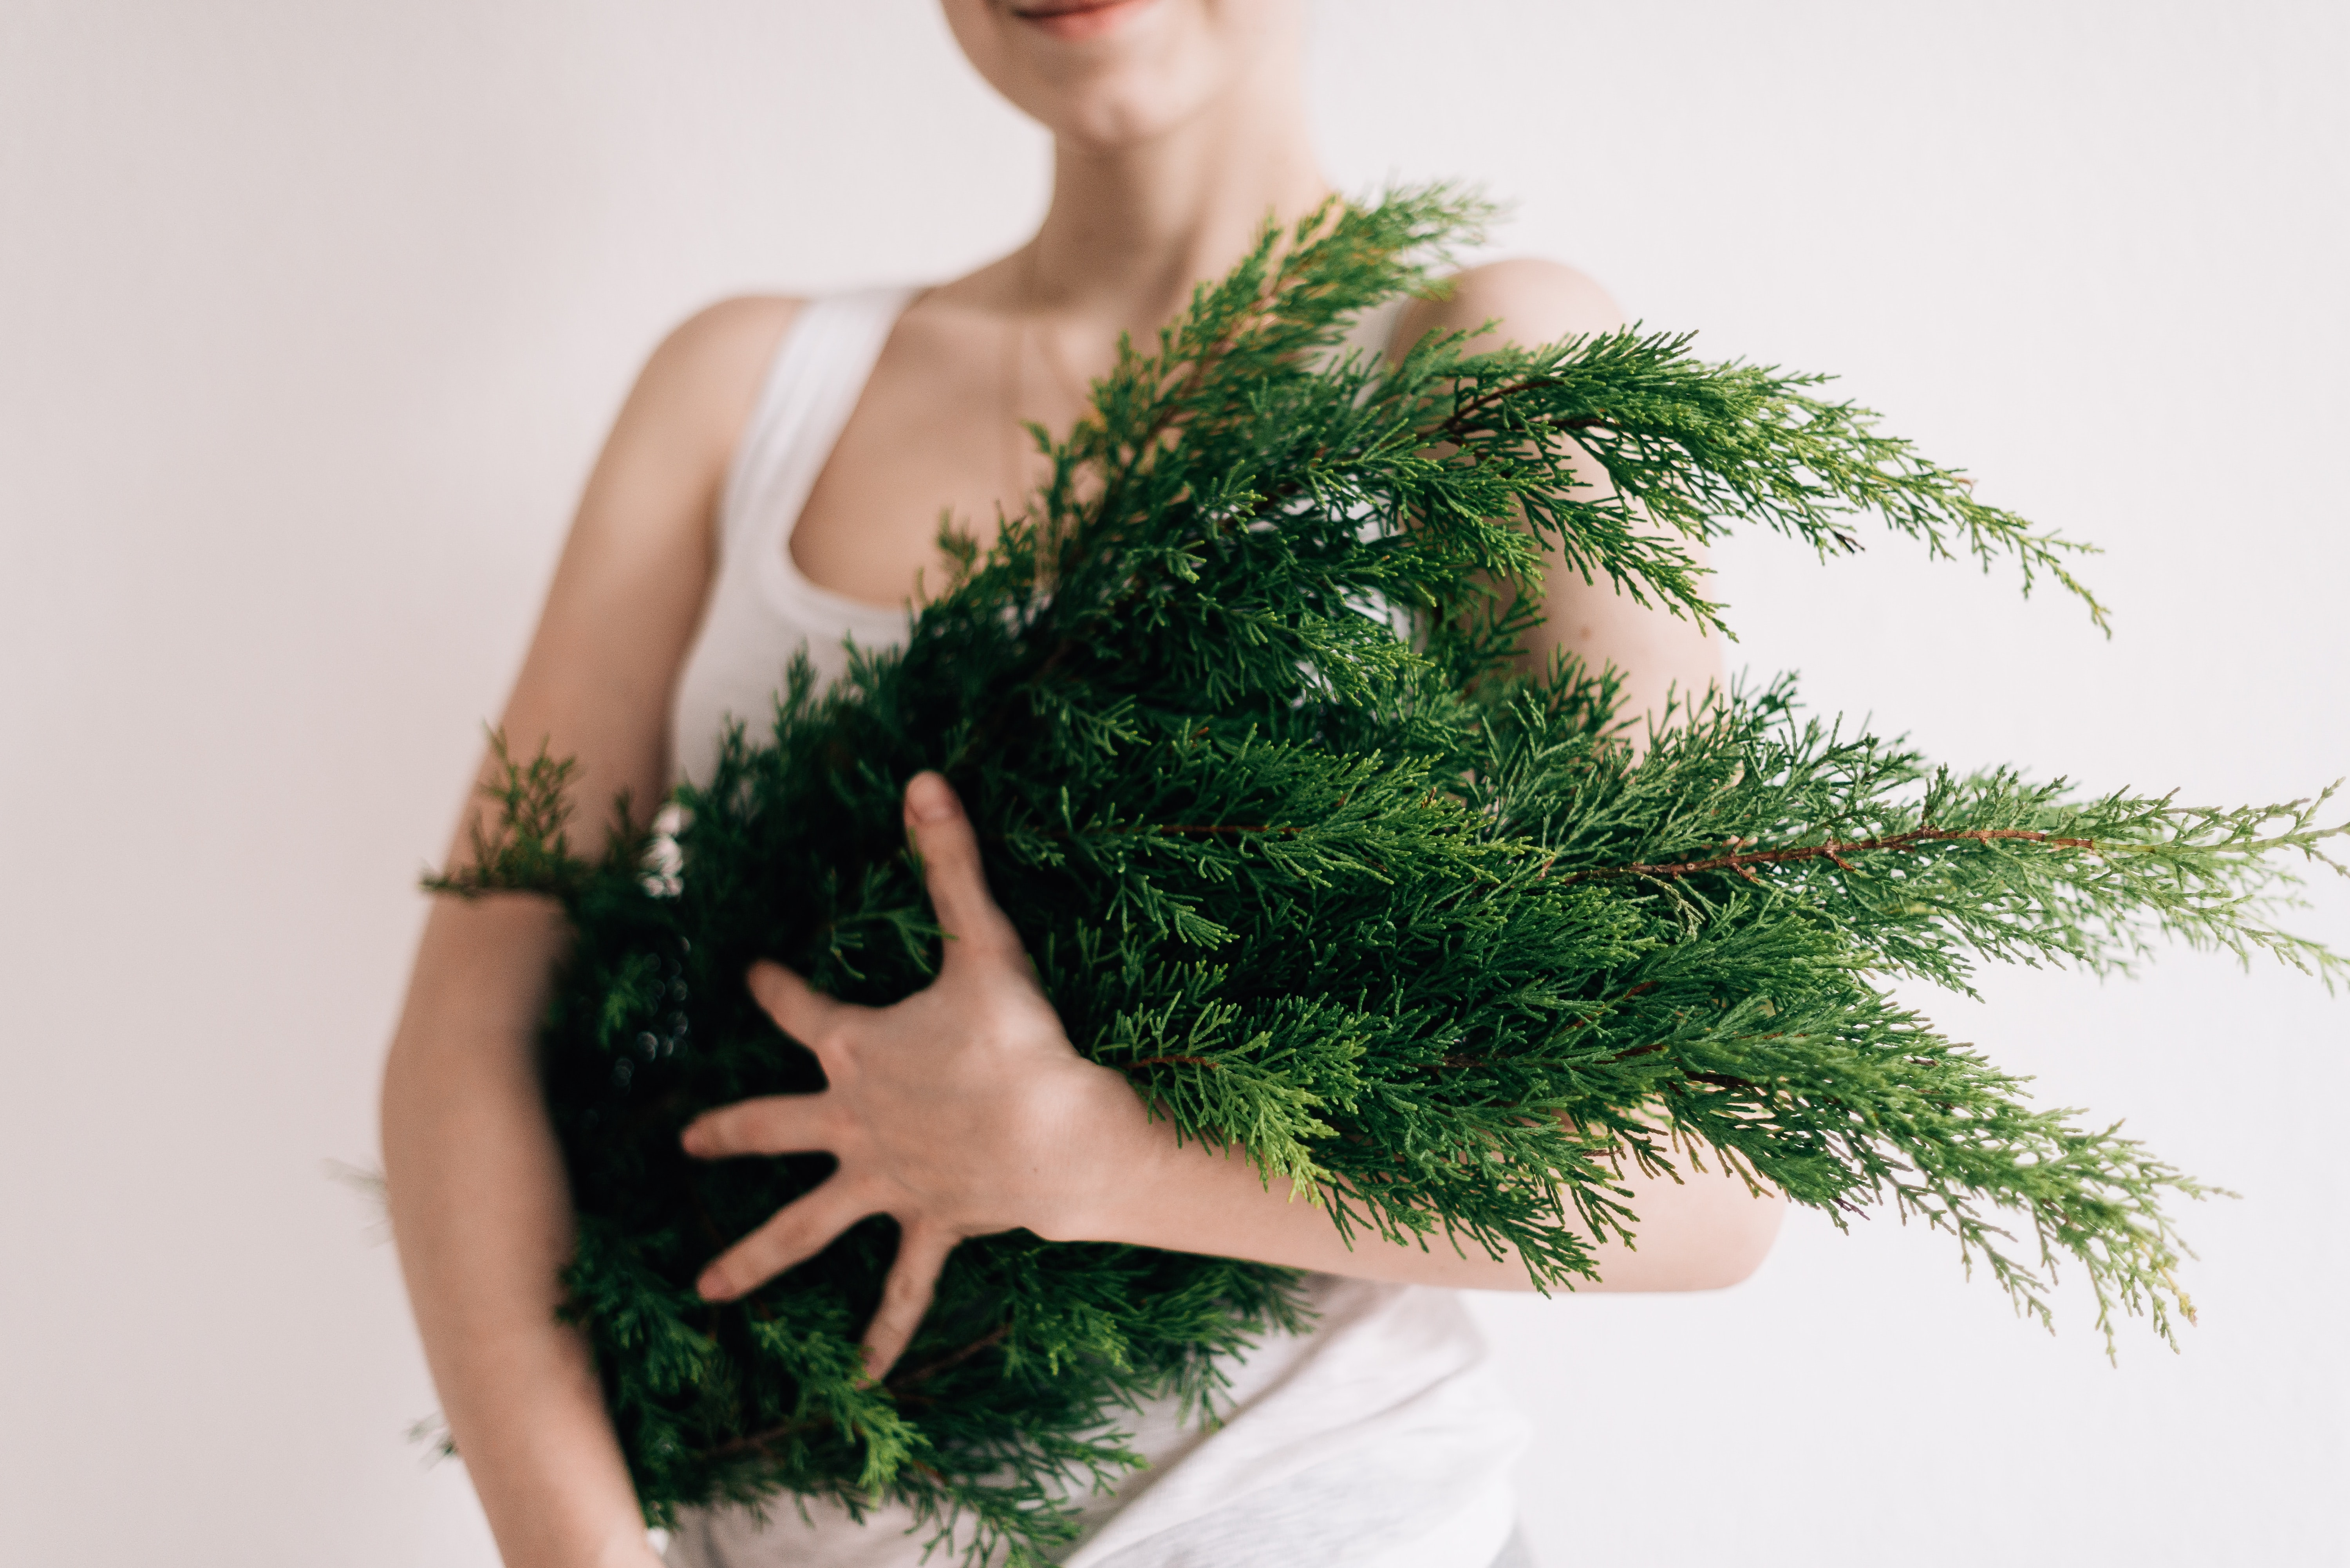 woman holding green leafs